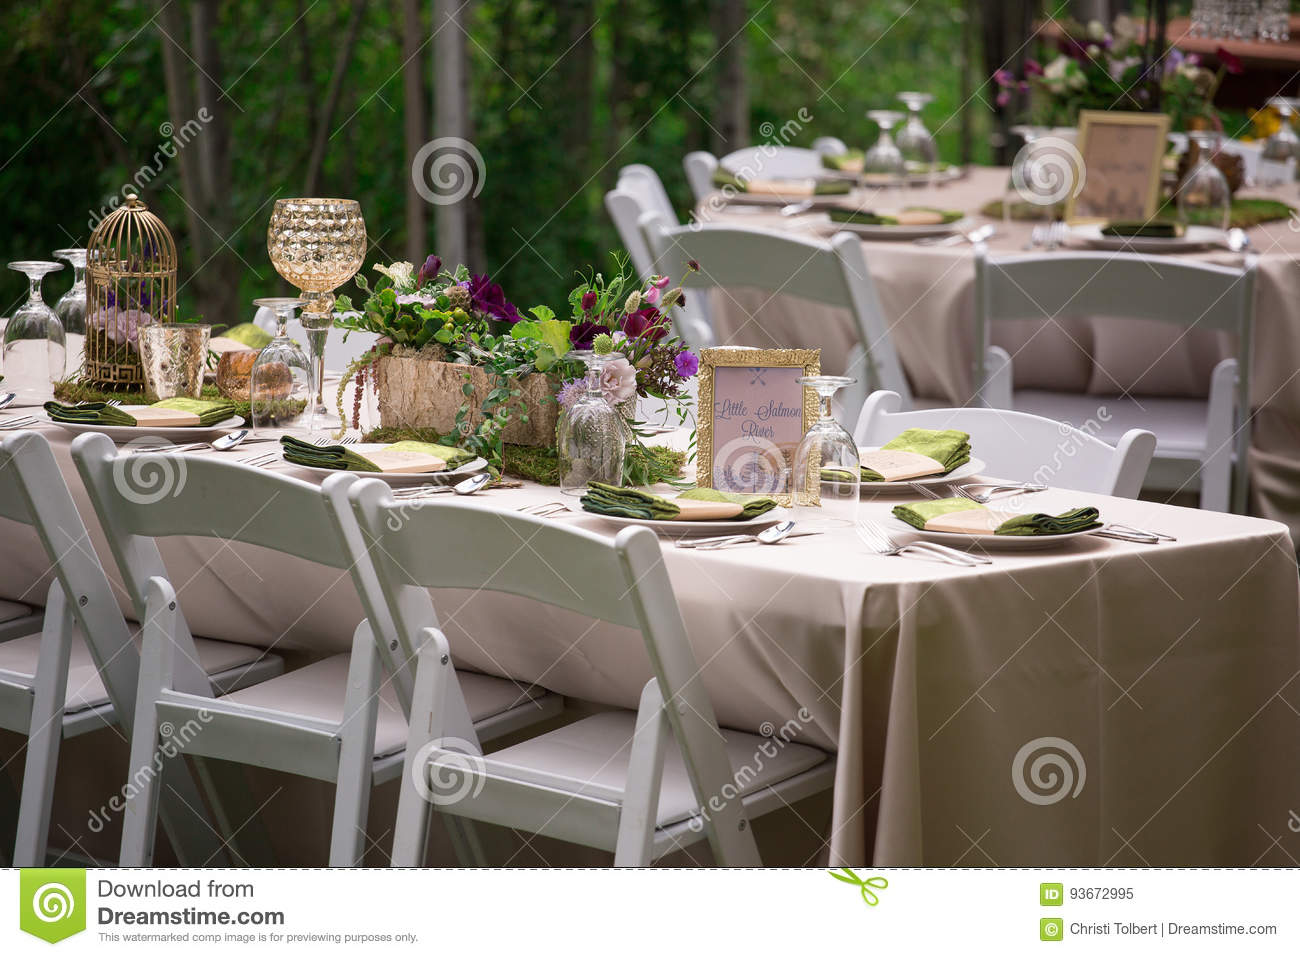 Rustic Outdoor Table Setting For Wedding Reception Stock Image